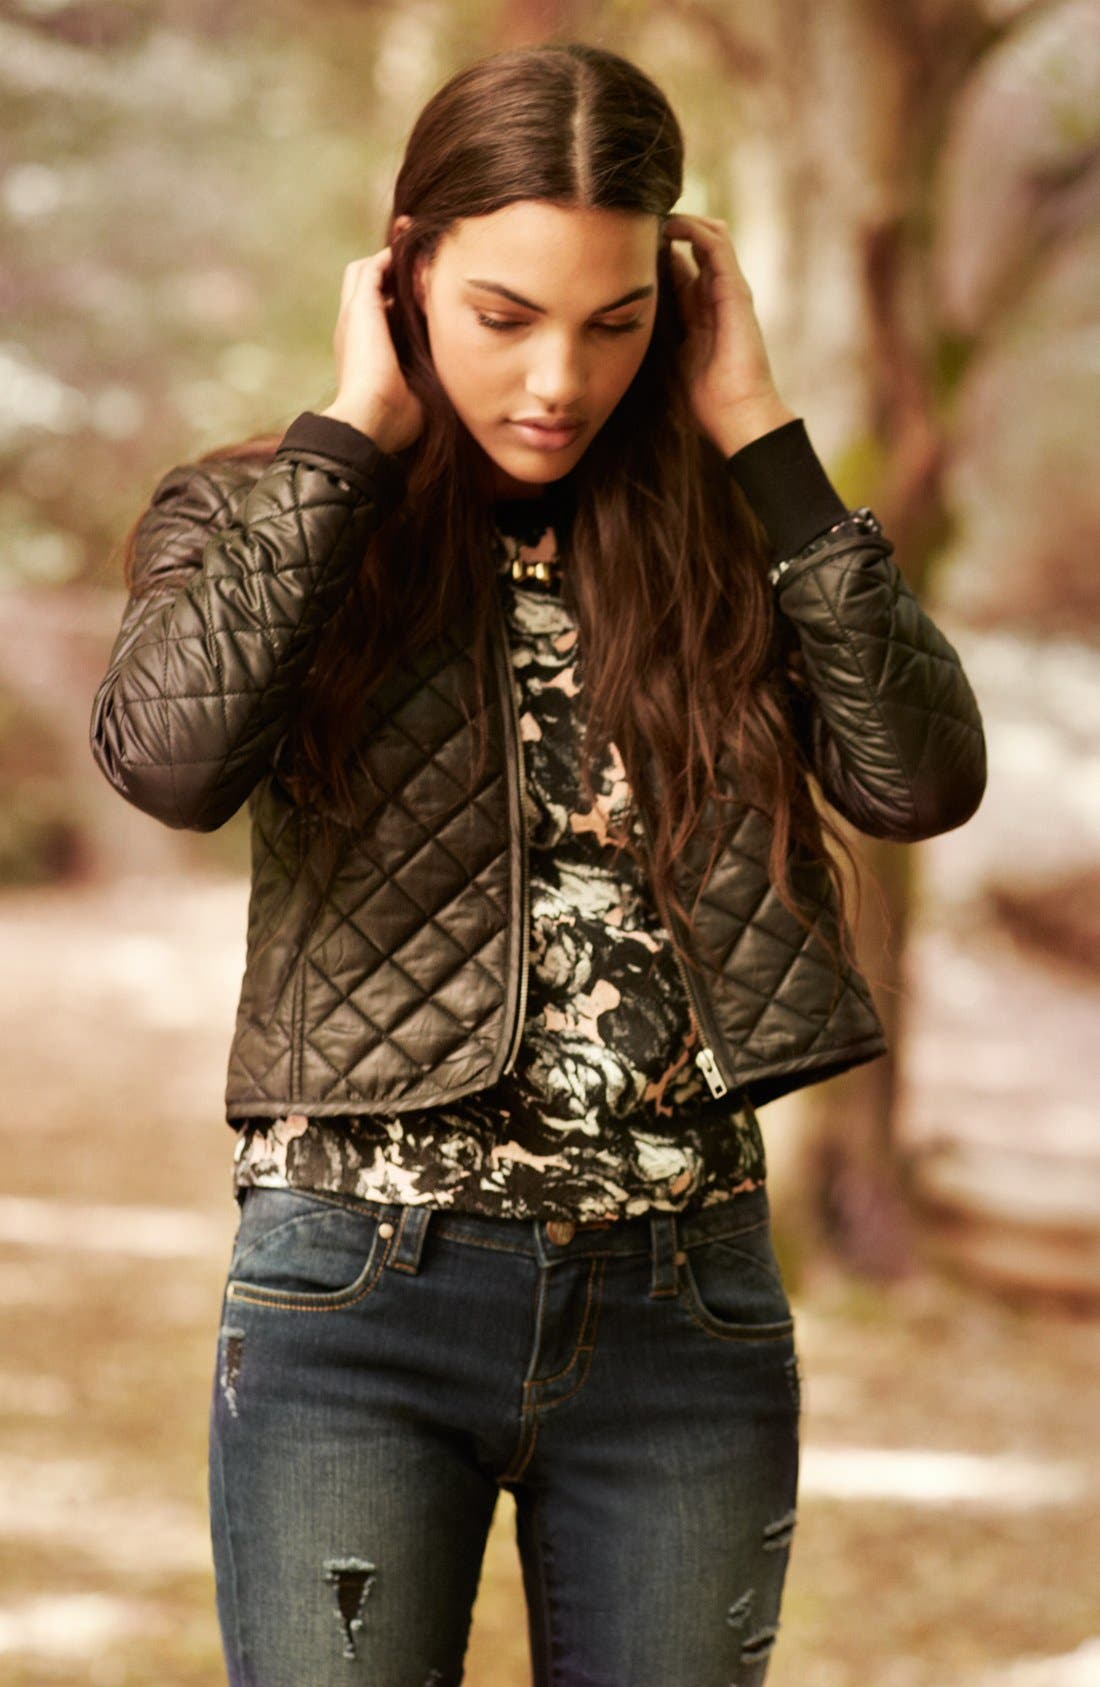 Main Image - Frenchi® Jacket, Elodie Top & STS Blue Jeans